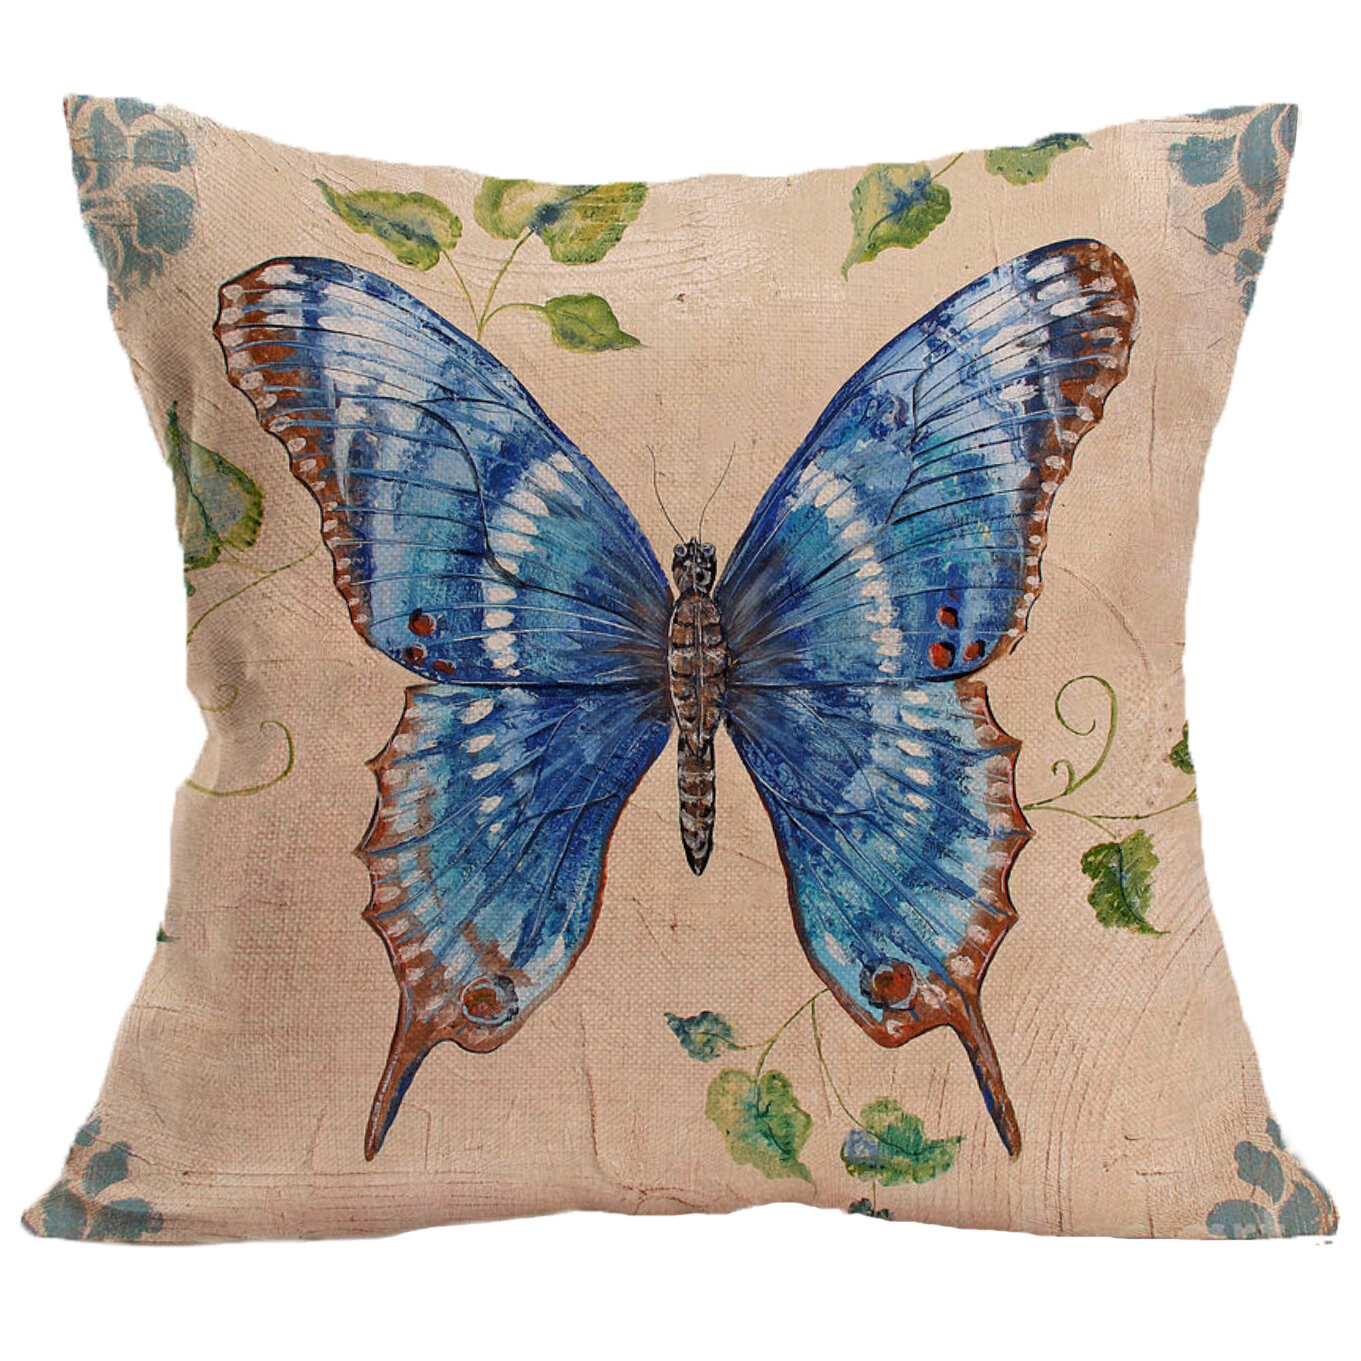 Cartoon_Butterfly_Cotton_Linen_Cushion_Cover_Square_House_Decor_Pillowcase